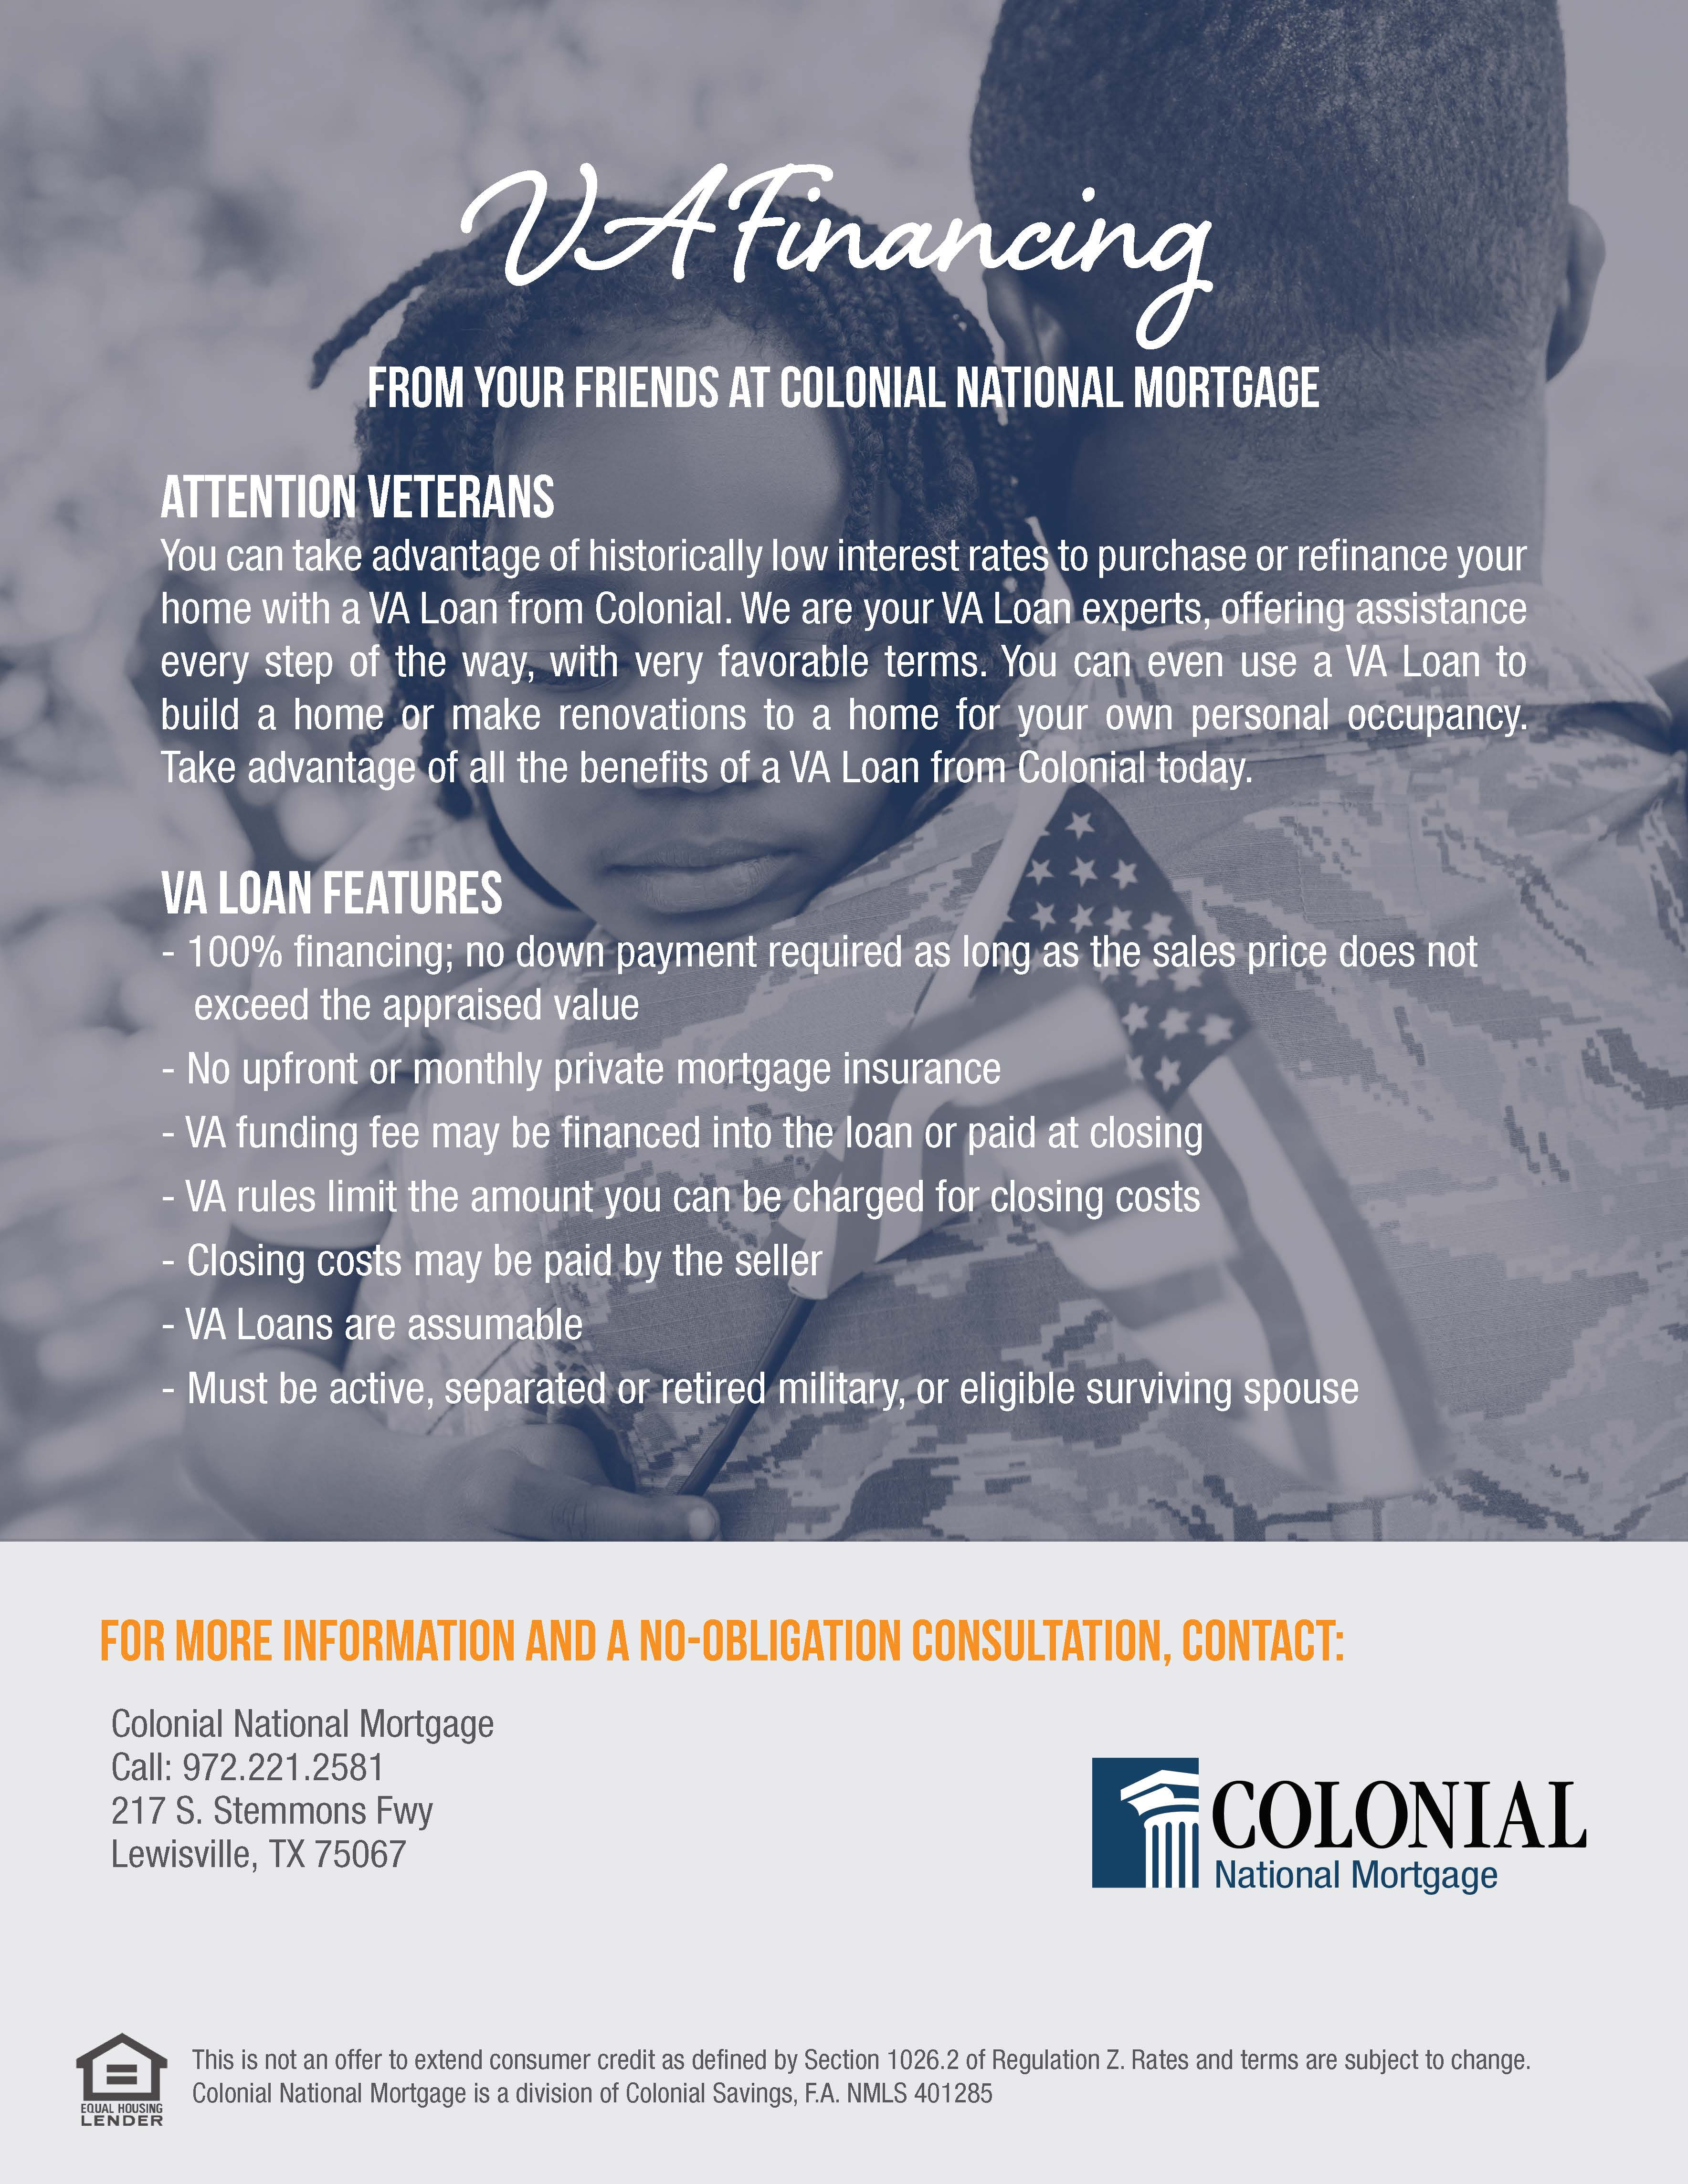 Colonial - Banking, Home Loans & Insurance image 0